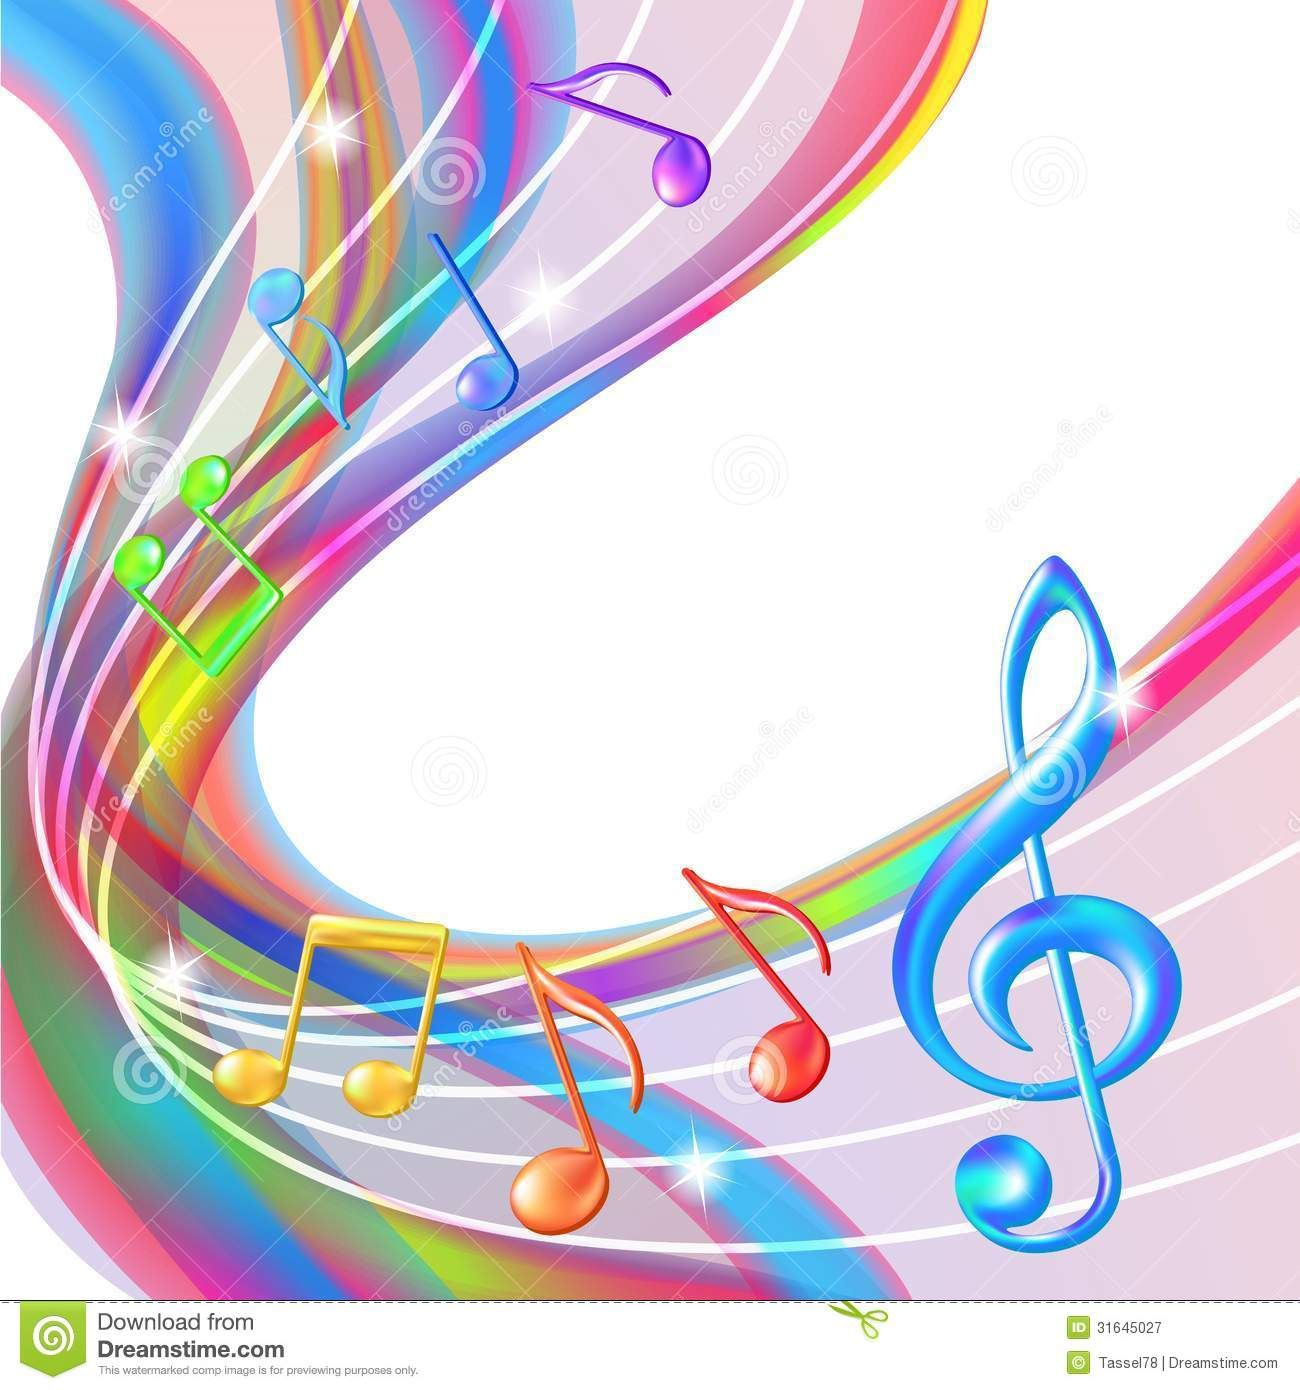 Colorful Abstract Notes Music Background Download From Over 36 Million High Quality Stock Photos Images Vect Music Backgrounds Music Notes Music Wallpaper